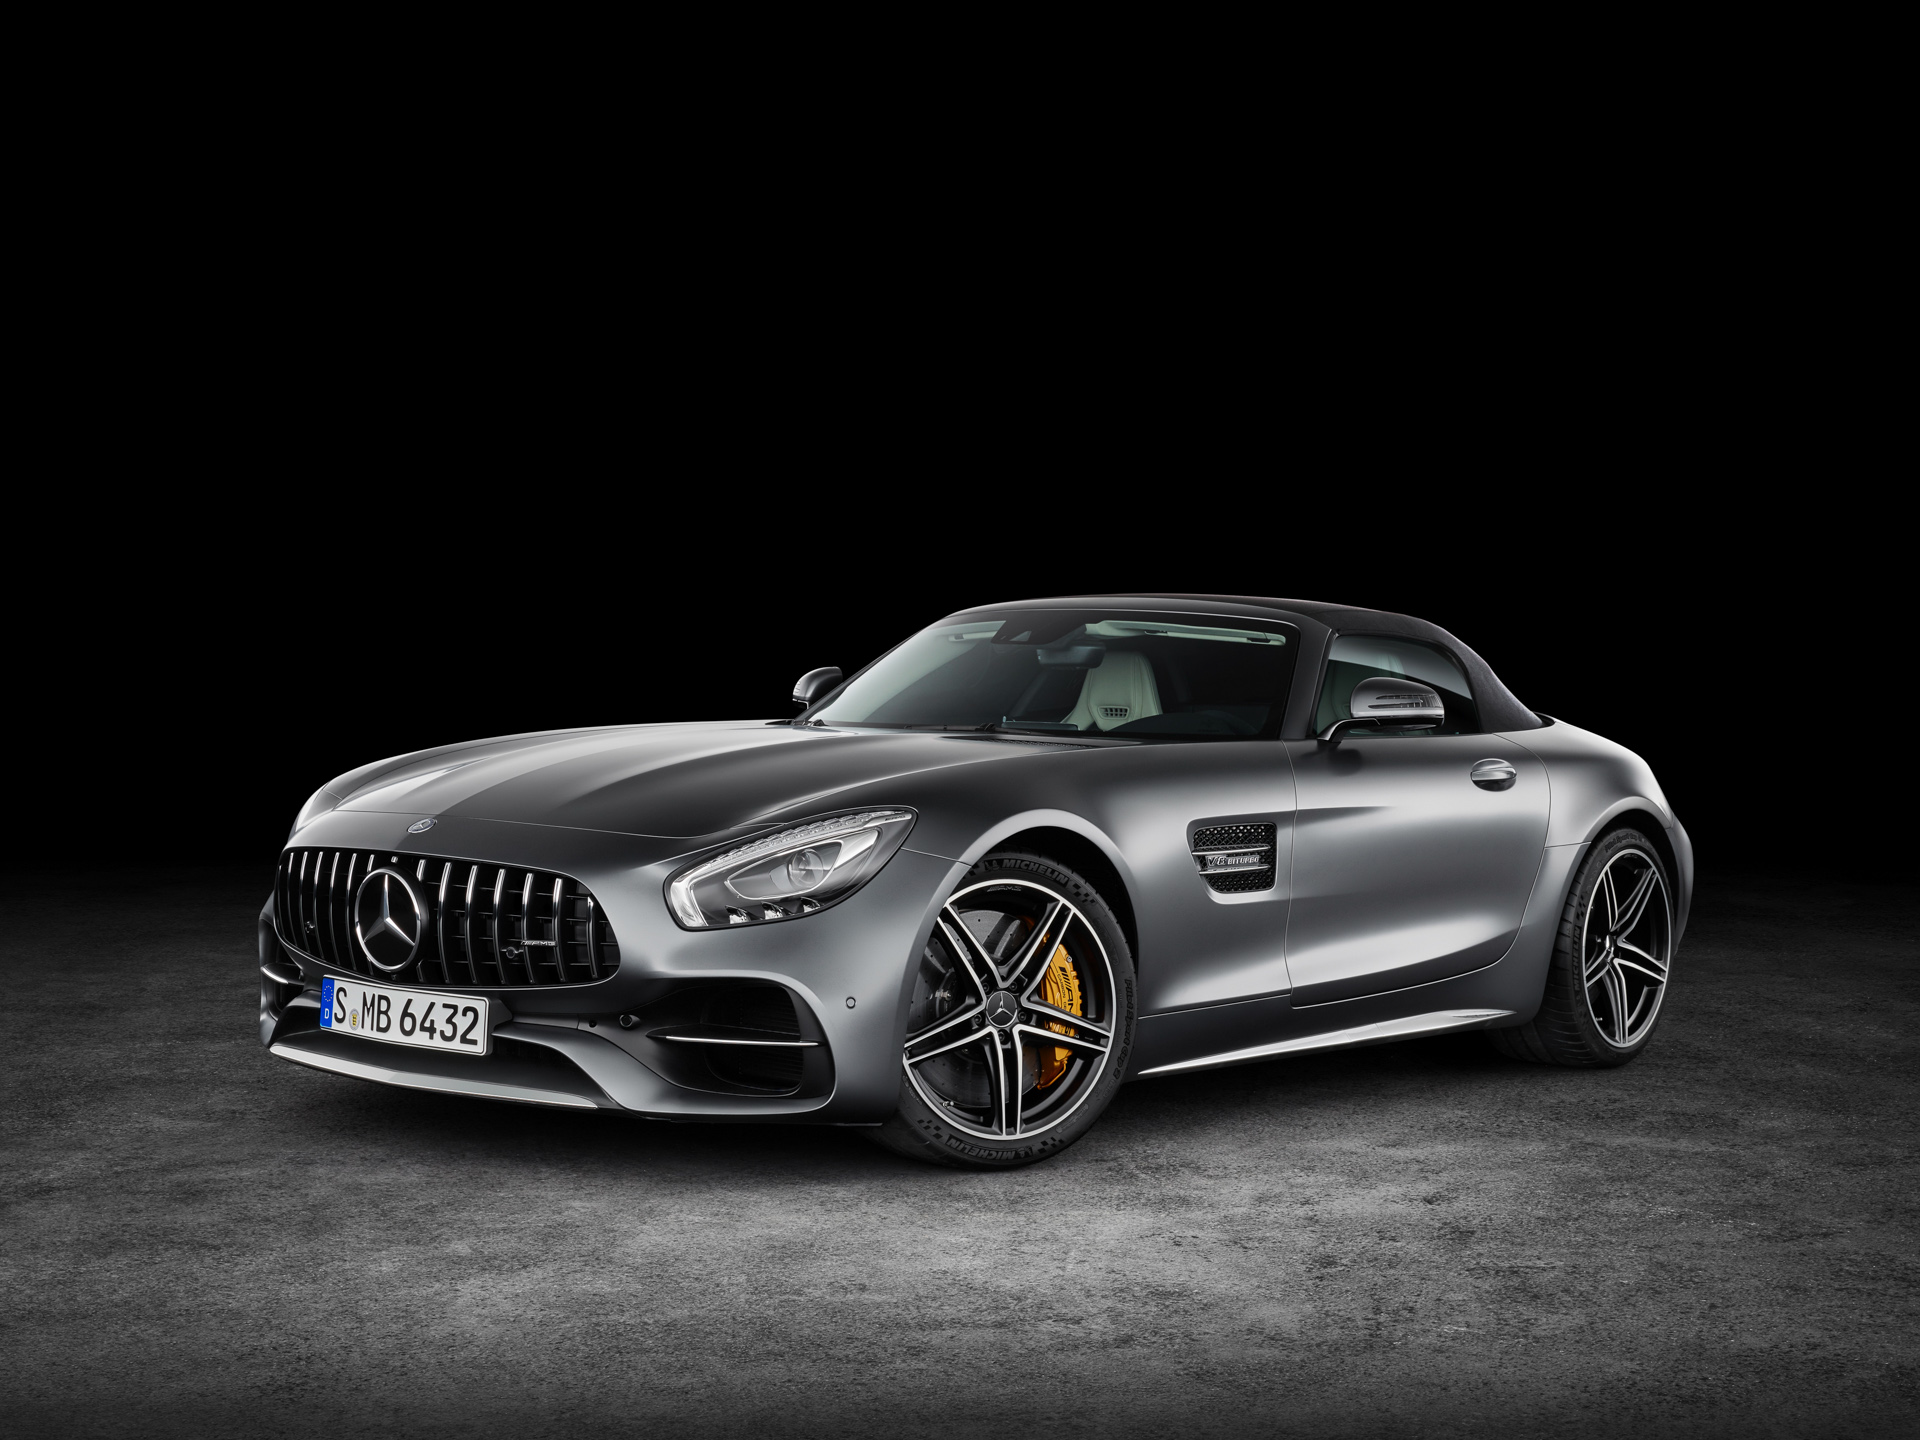 AMG GT C Roadster (R 190), 2016; Exterieur: designo selenitgrau magno; Interieur: Leder Nappa Exklusiv macchiatobeige ;Kraftstoffverbrauch kombiniert: 11,4 l/100 km, CO2-Emissionen kombiniert: 259 g/km AMG GT C Roadster (R 190), 2016; exterior: designo selenit grey magno; interior:Nappa leather exclusive macchiato beige; fuel consumption, combined: 11.4 l/100 km; combined CO2 emissions: 259 g/km